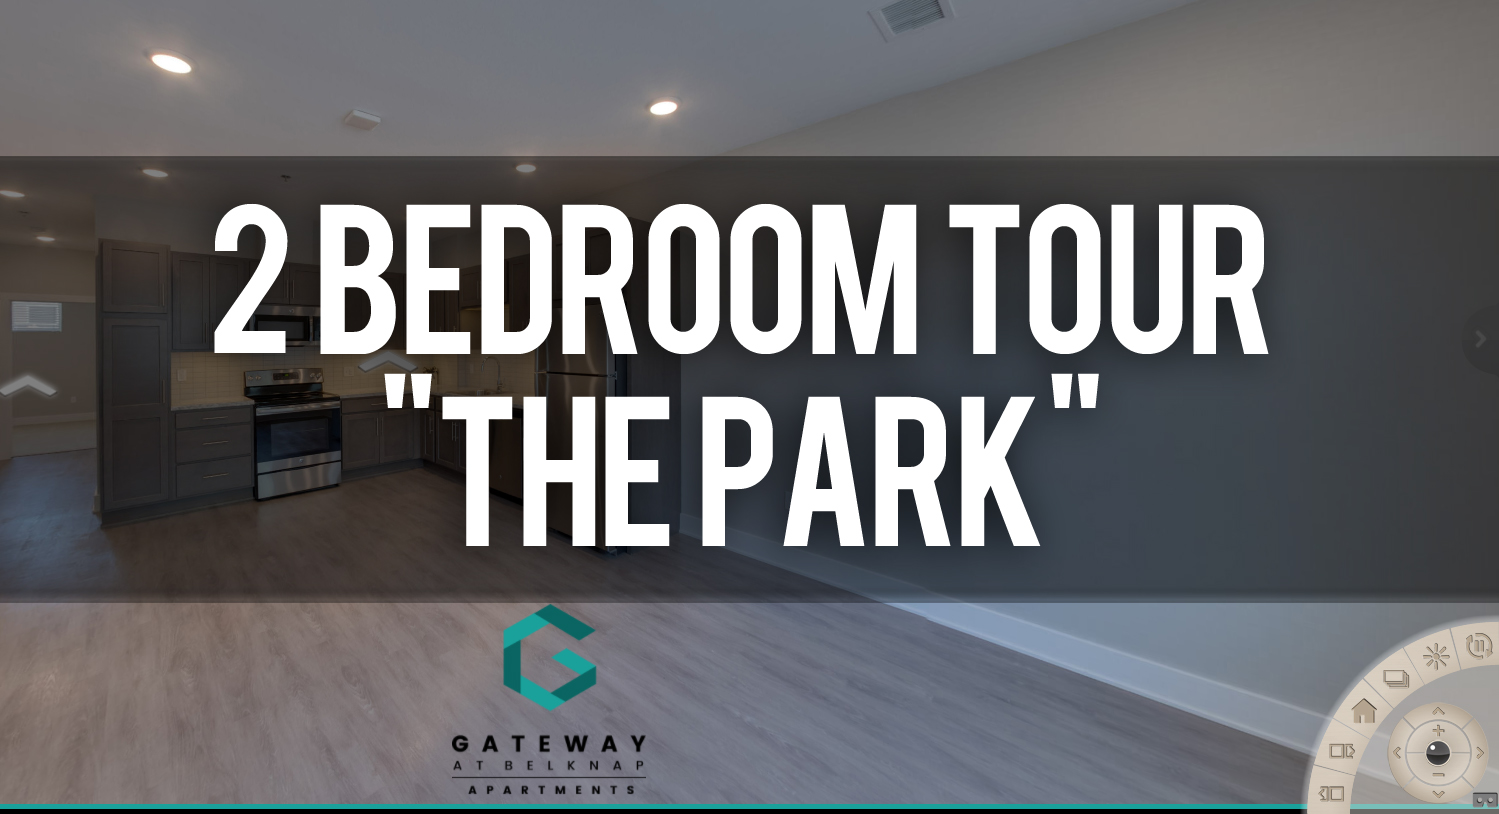 Virtual Tour of The Park 2 Bedroom floorplan at Gateway at Belknap Apartments